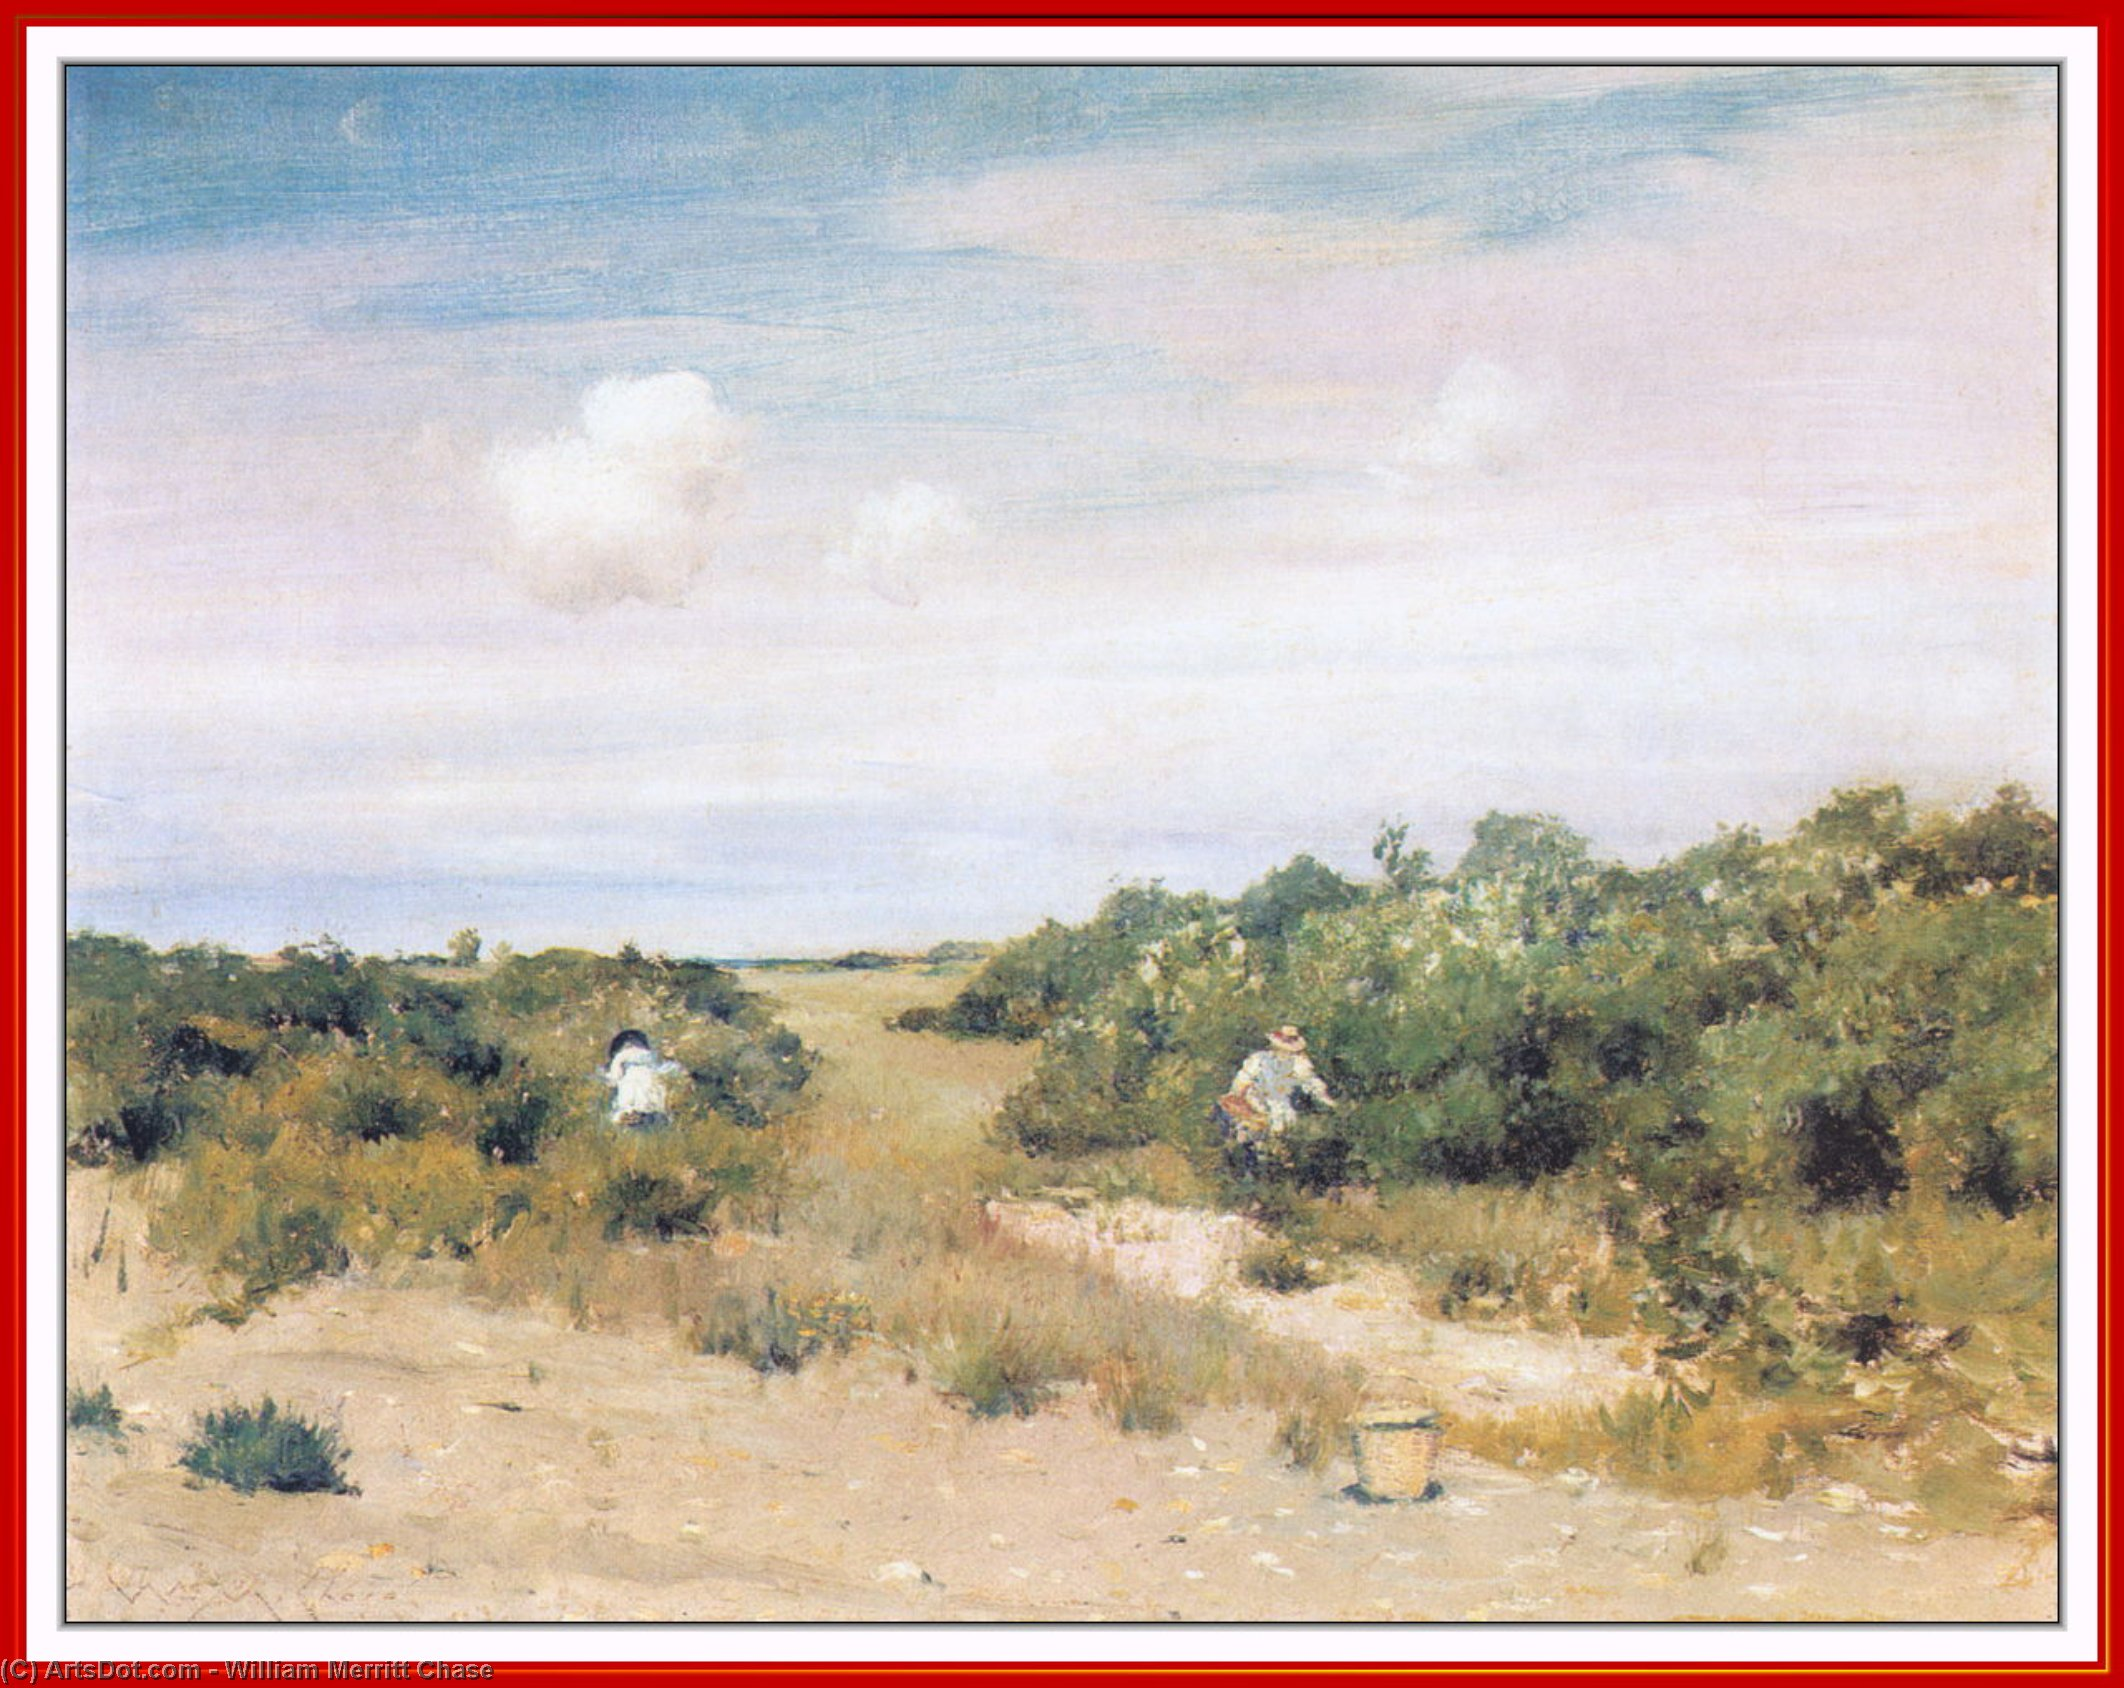 Shinnecock Хиллз лонг-айленд  по William Merritt Chase (1849-1916, United States)